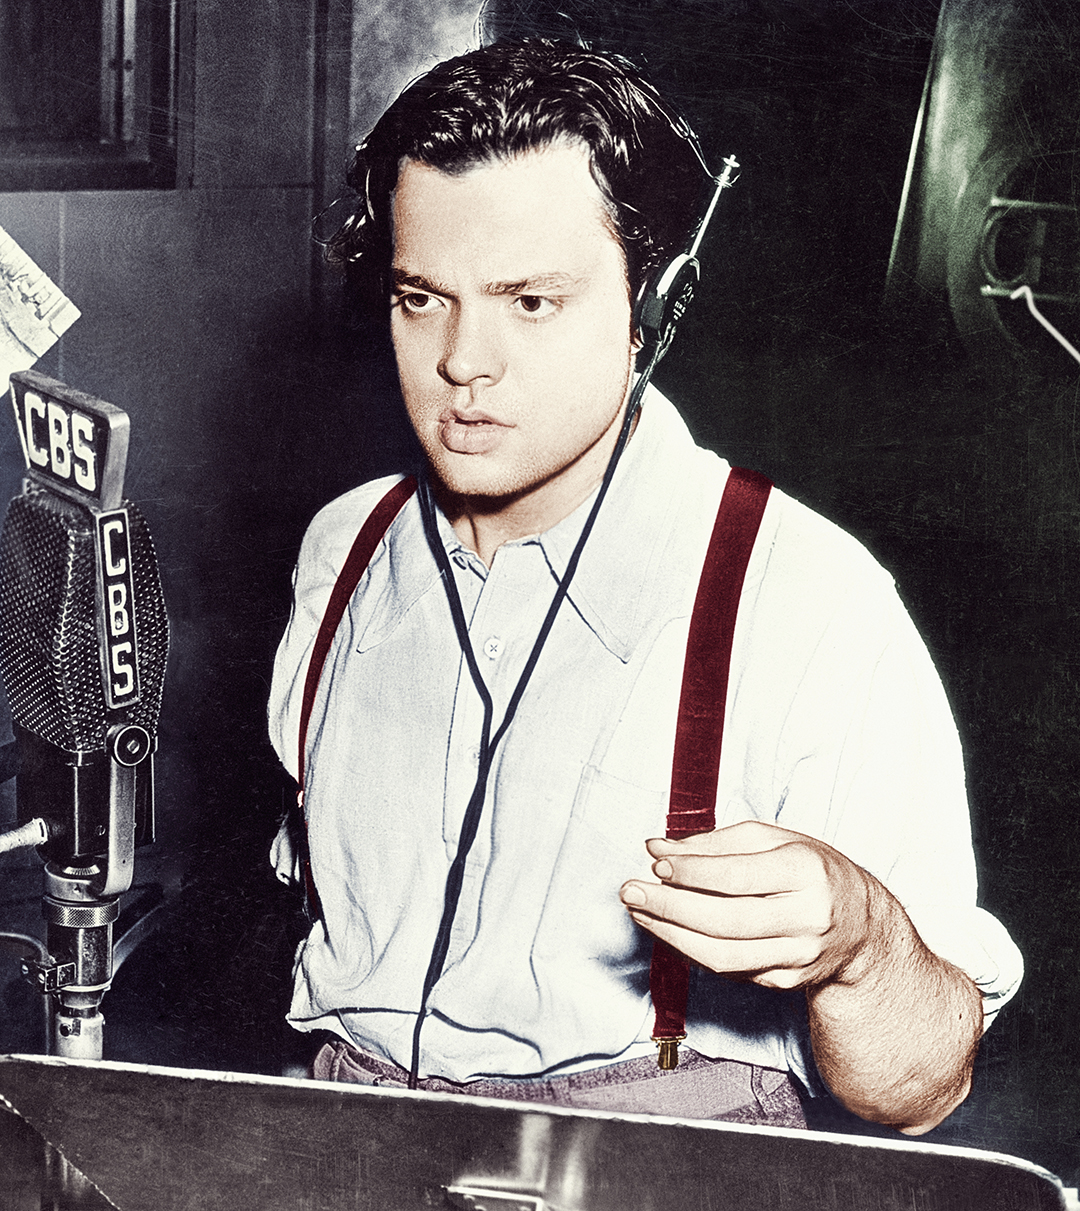 Orson Welles Broadcasting on CBS ca. 1938